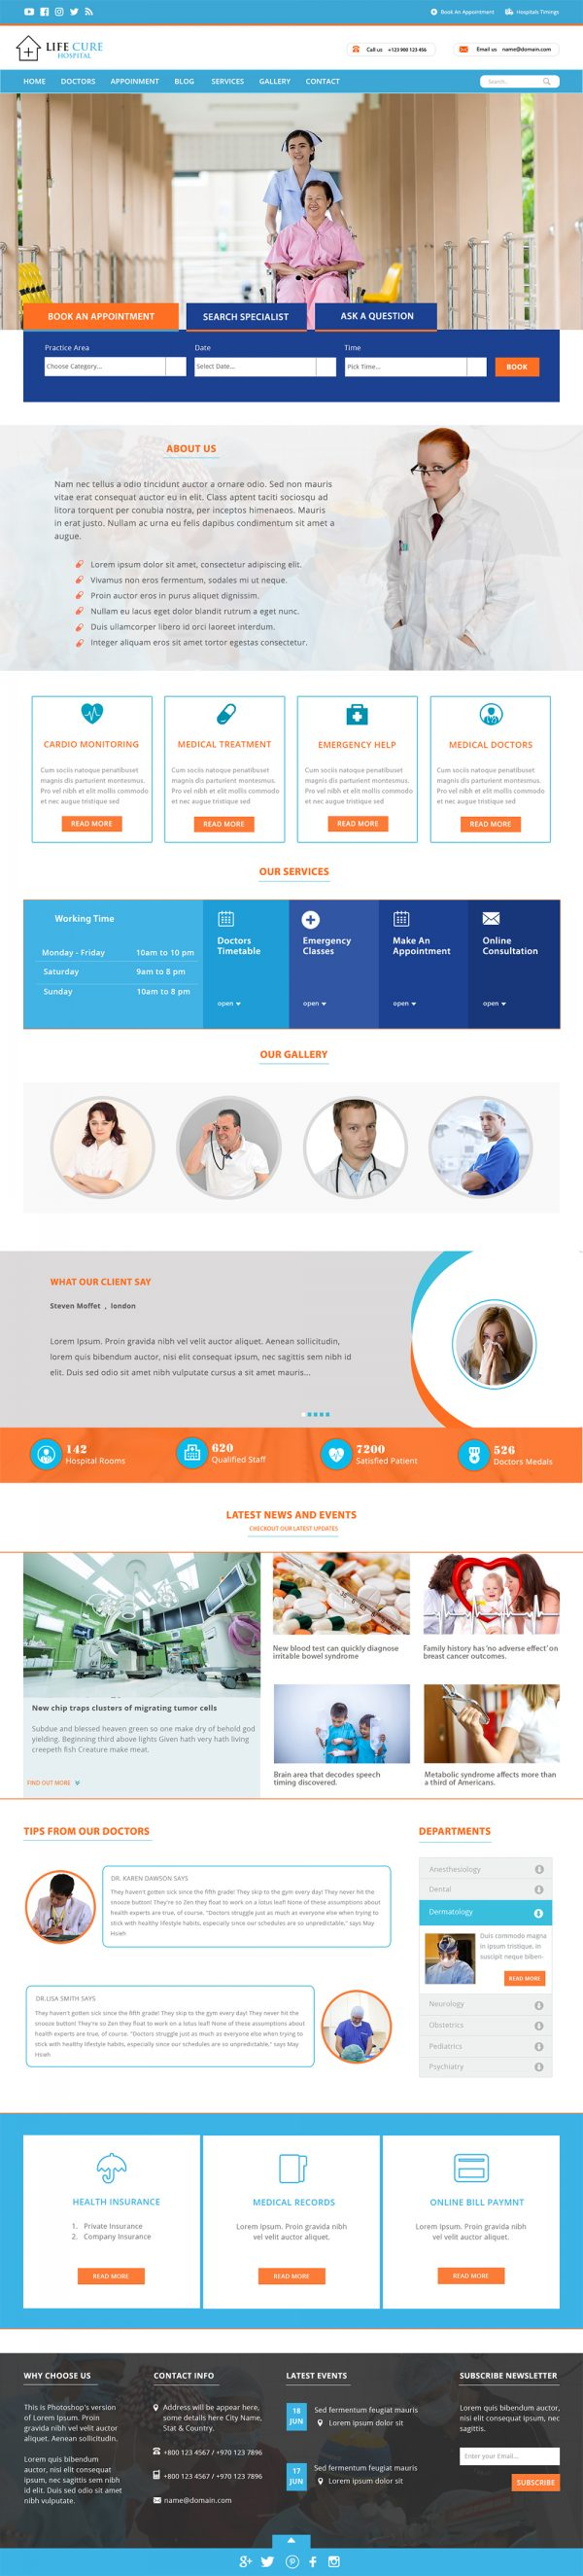 Hospital-WordPress-Theme